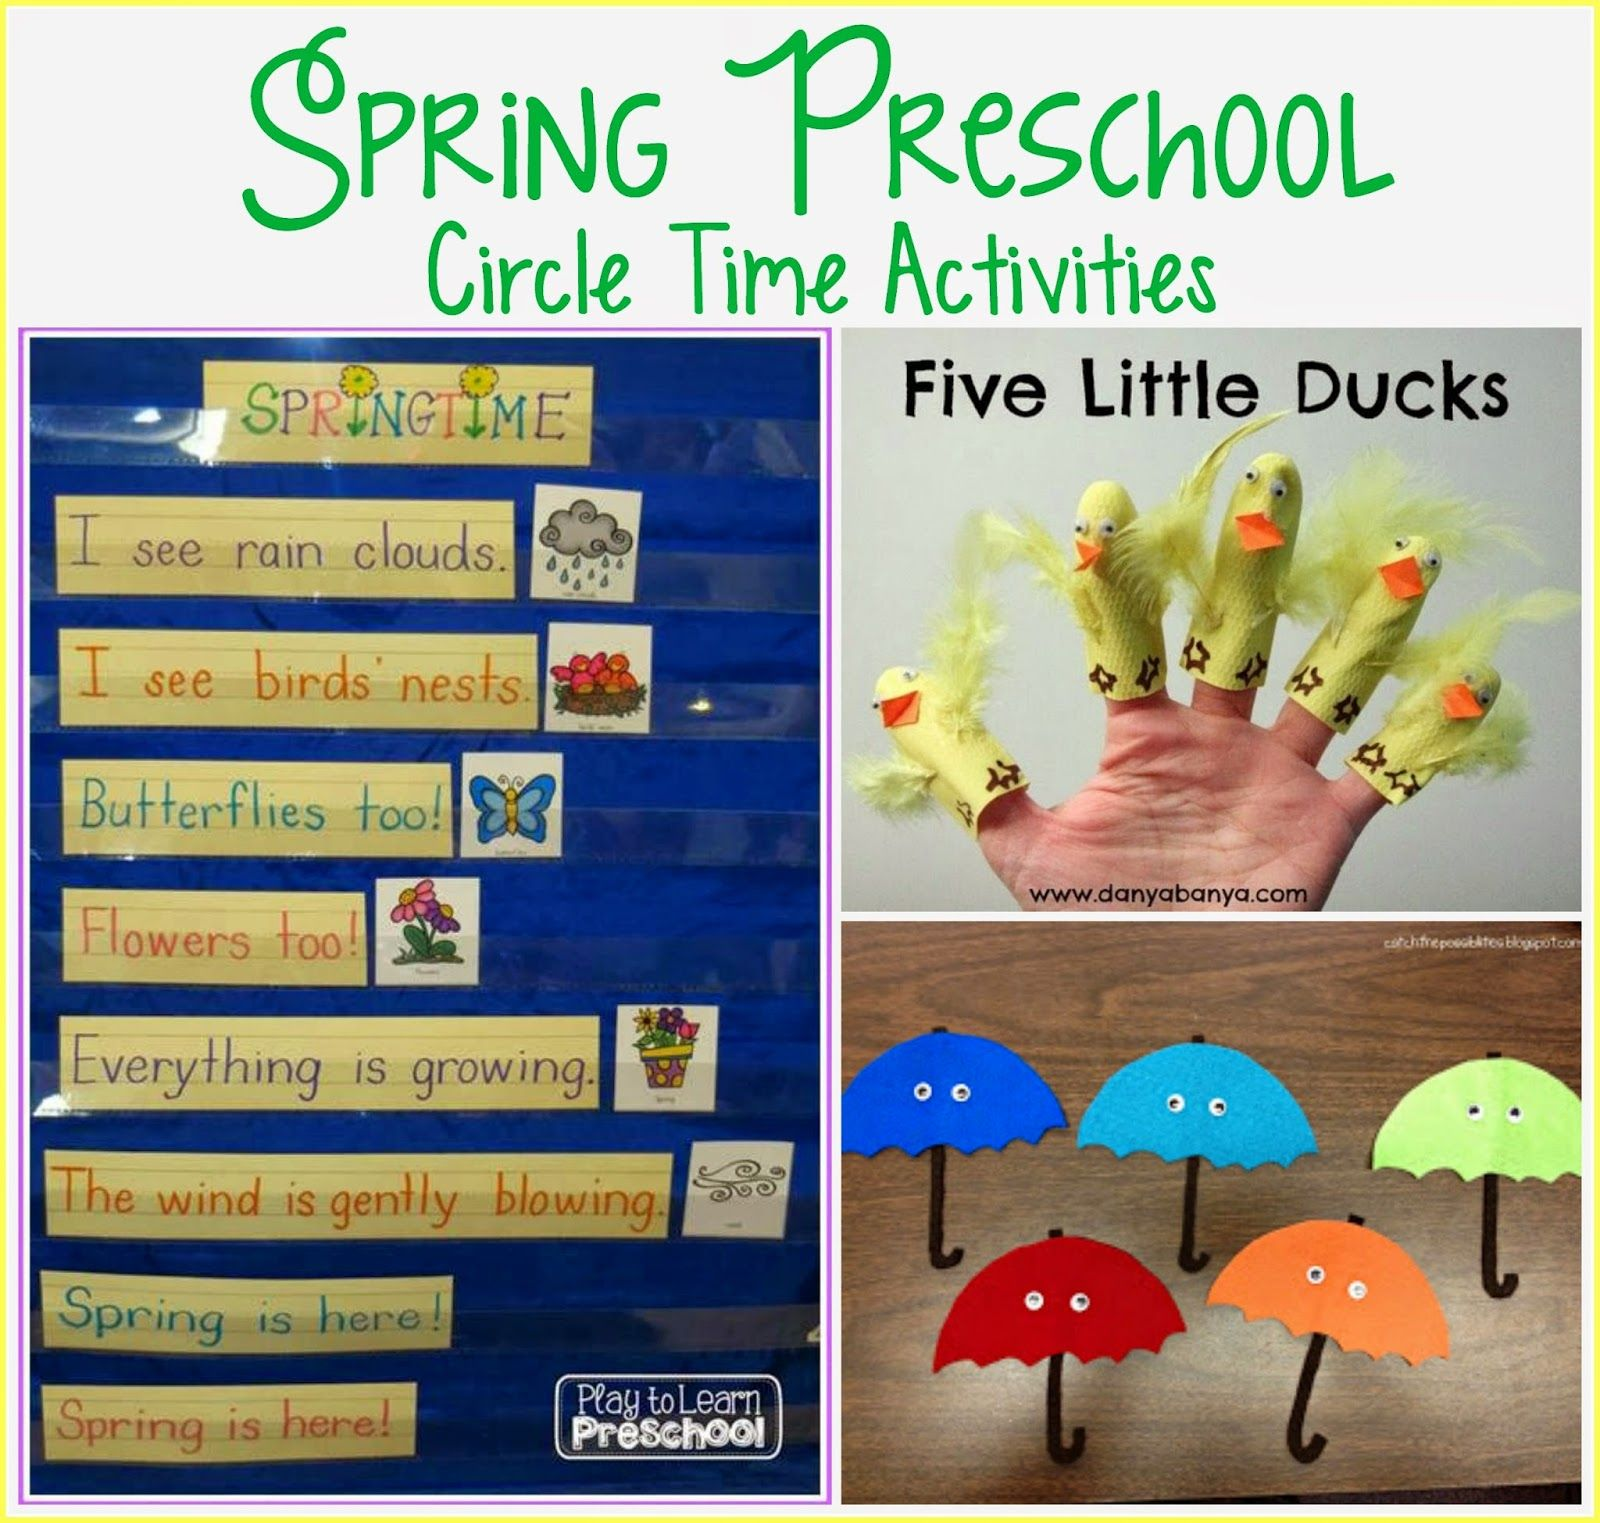 Play To Learn Preschool Spring Circle Time Activities